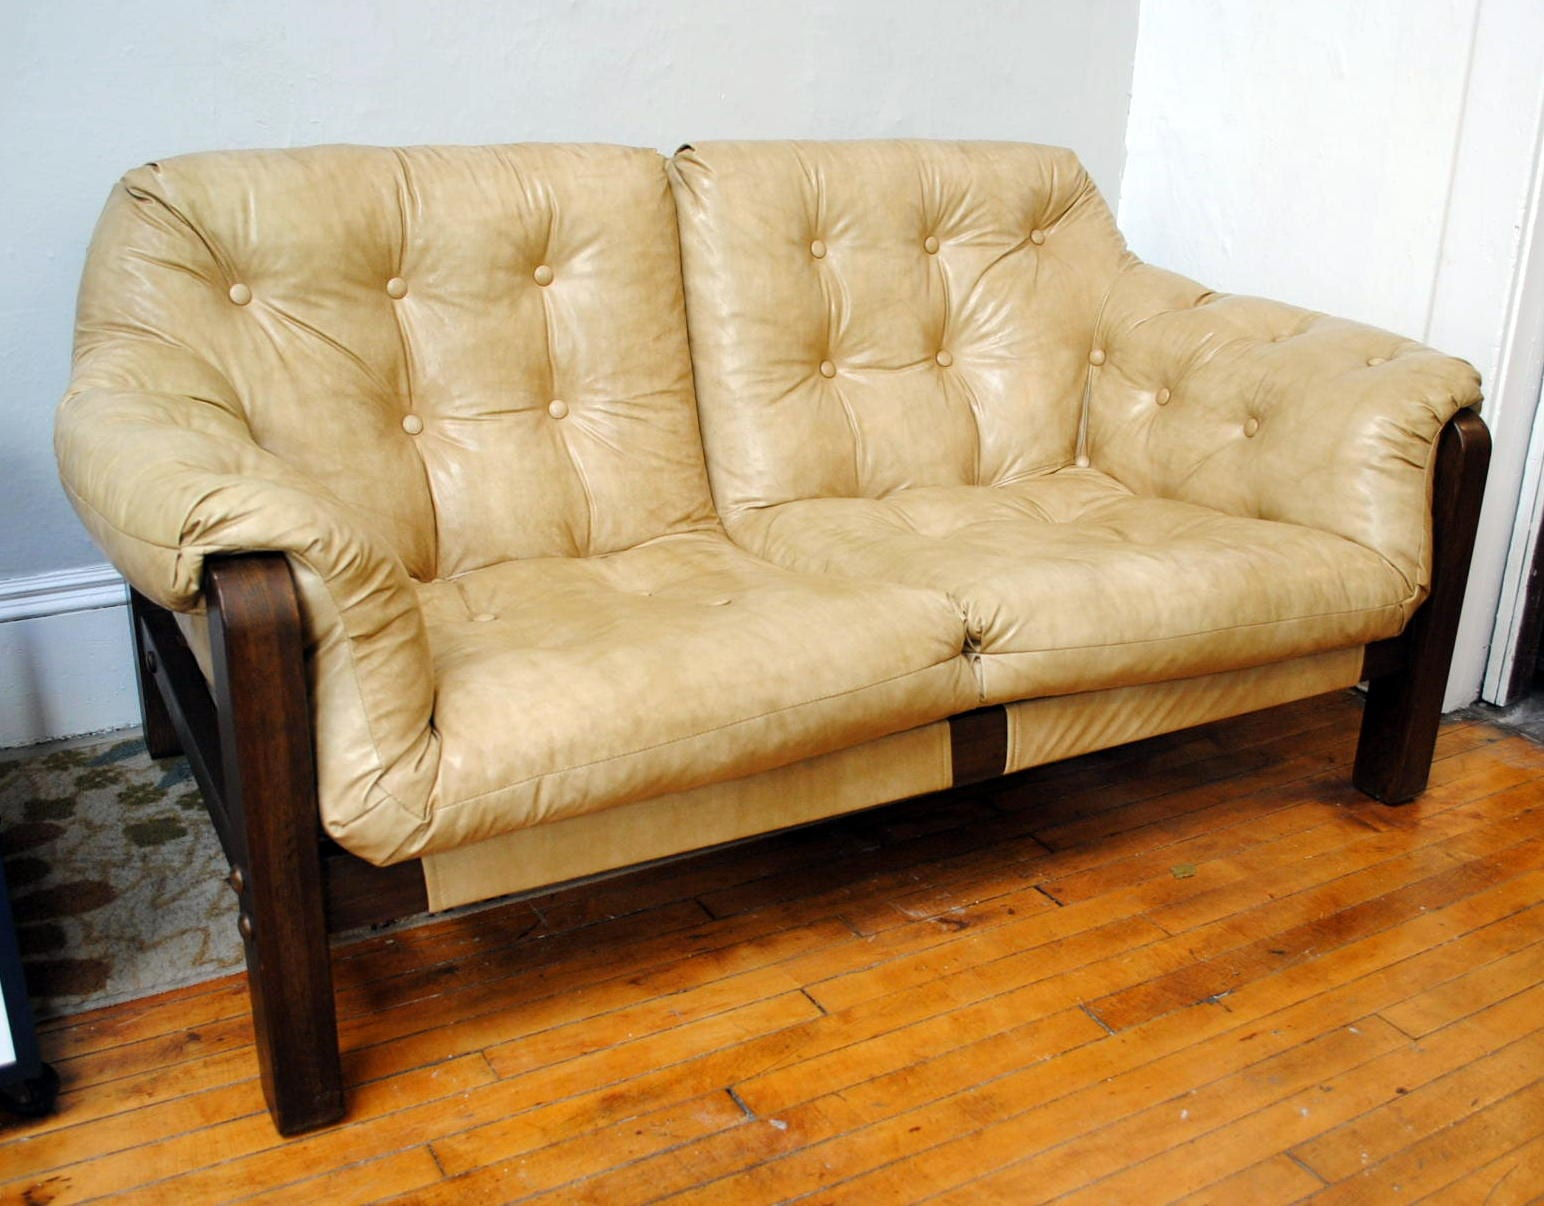 percival lafer sofa bonded leather repair mid century style sling circa